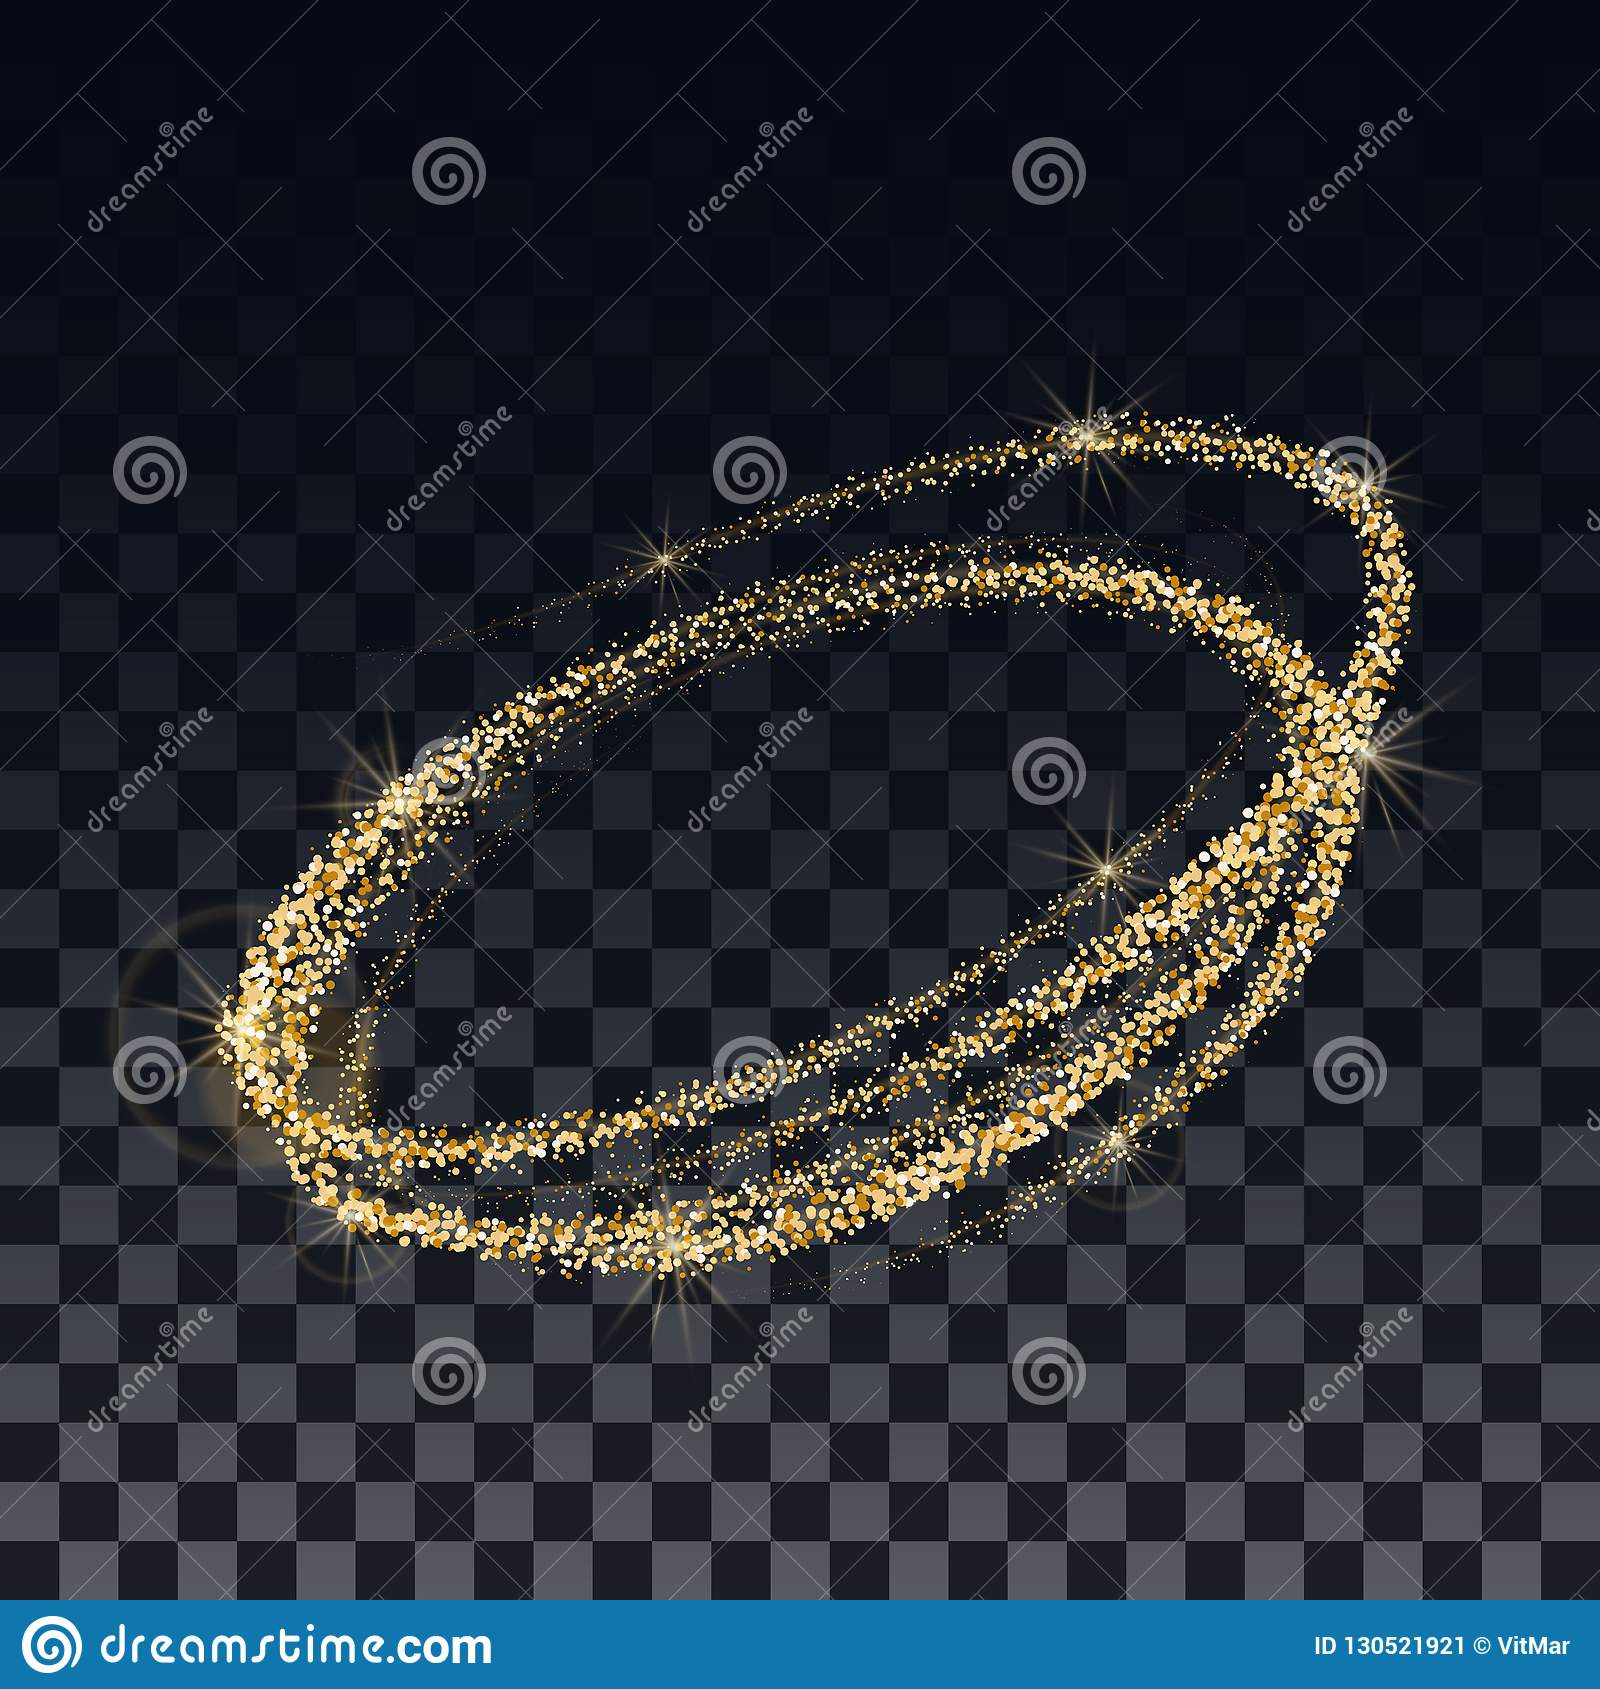 Golden confetti and shimmering particles on a transparent background. The template for the design of the spiral.